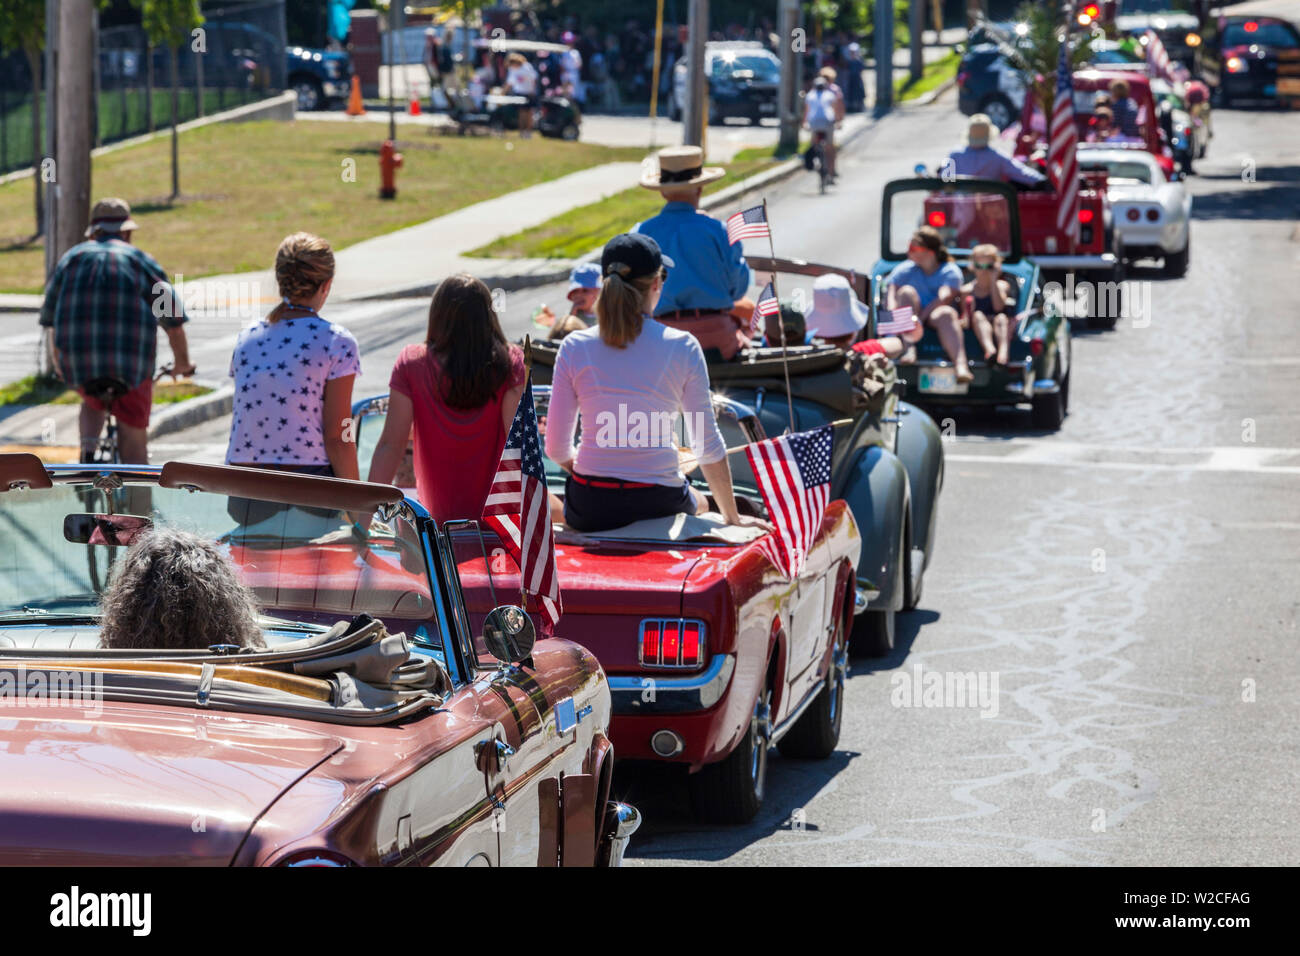 USA, Massachusetts, Manchester By The Sea, Fourth of July, parade of antique cars Stock Photo